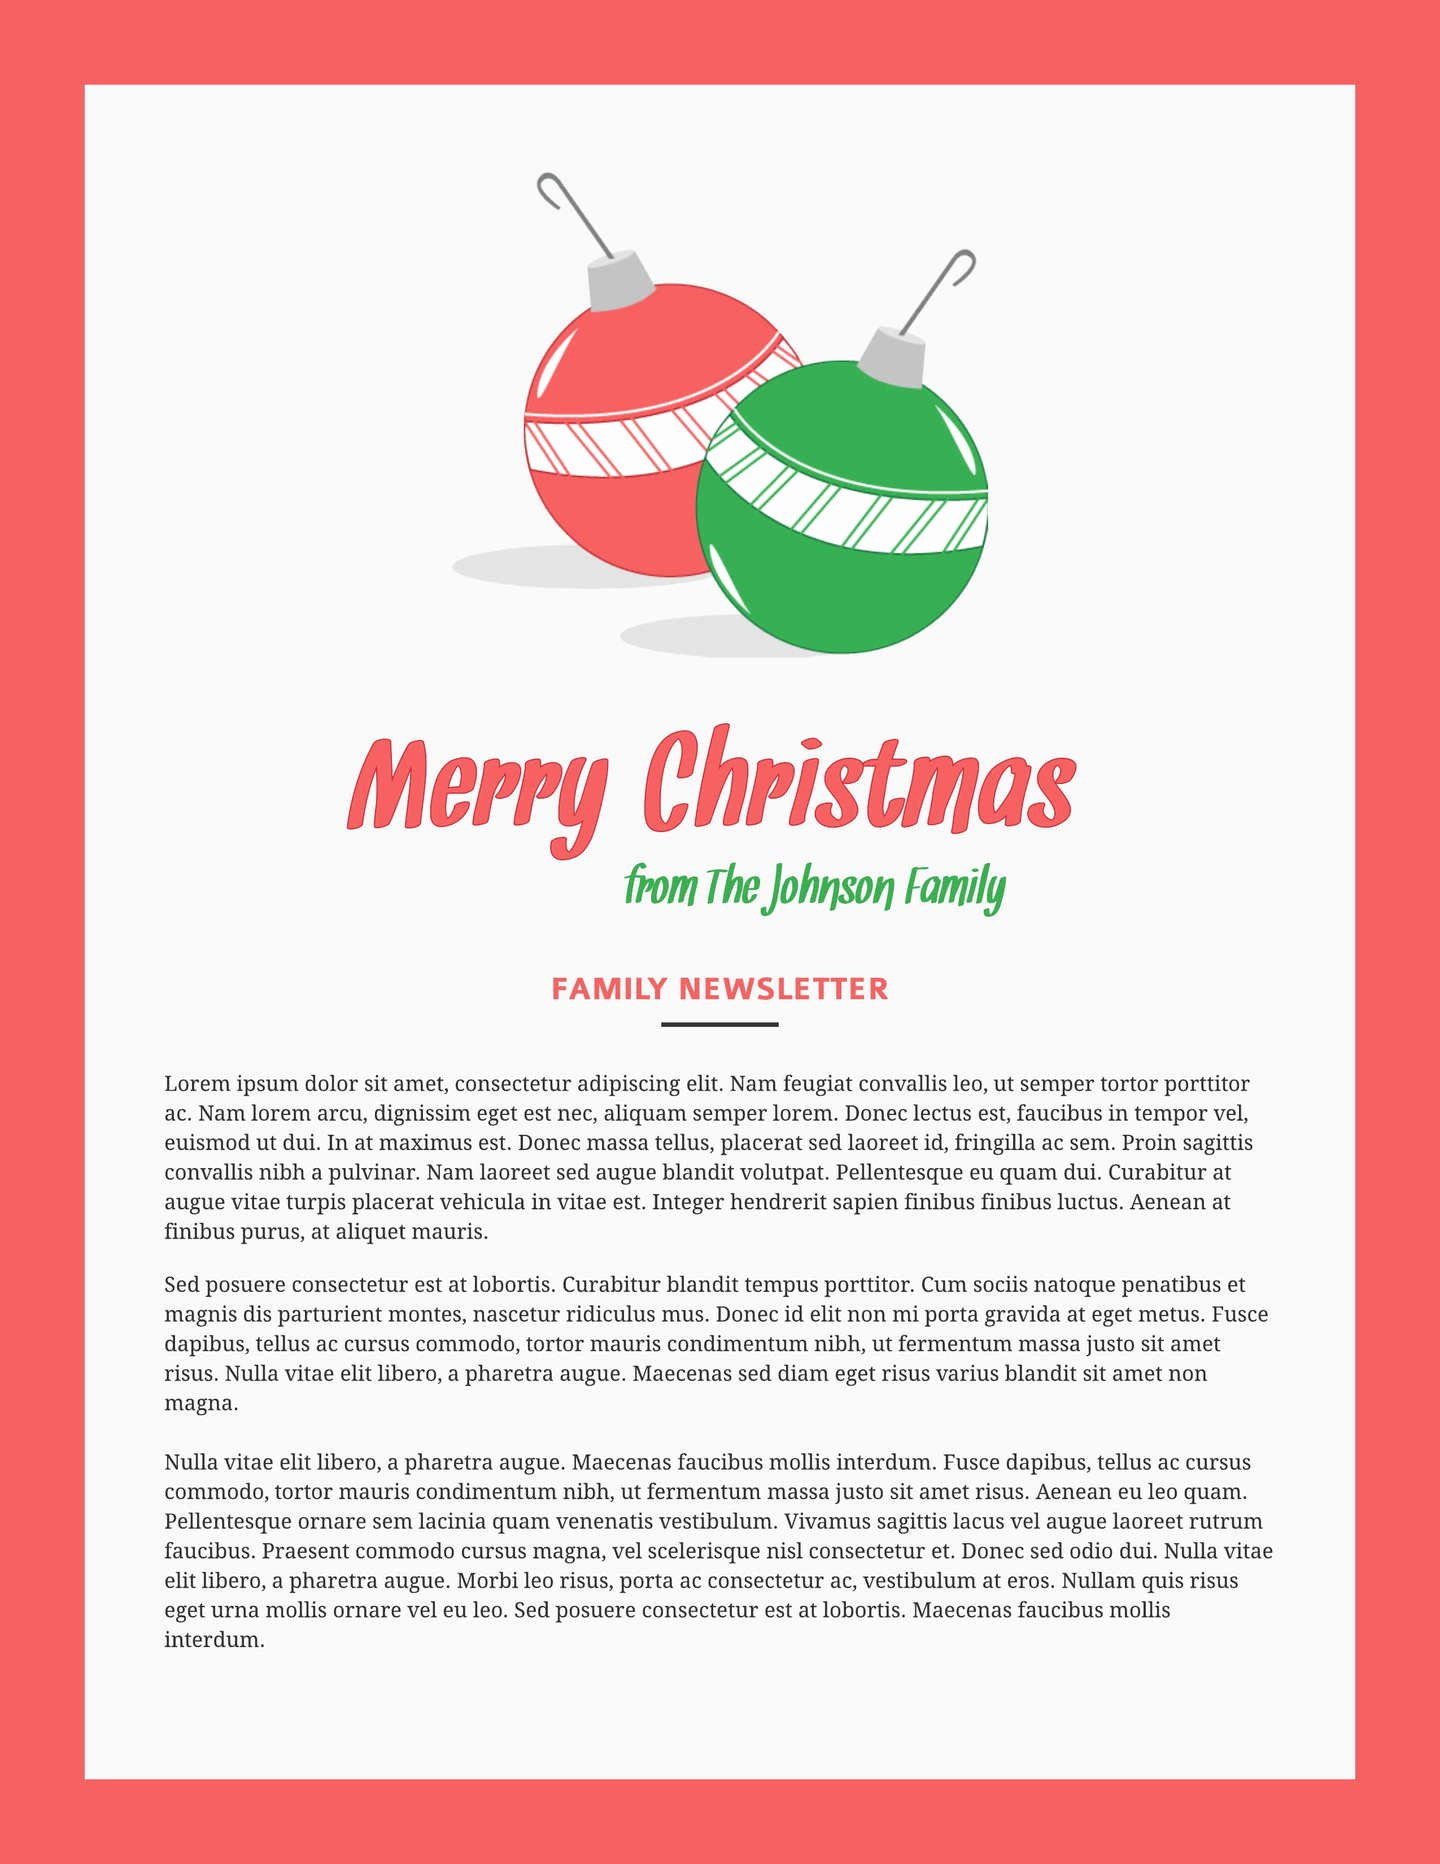 Free Holiday Newsletter Template Inspirational 6 Free Christmas Templates & Examples Lucidpress